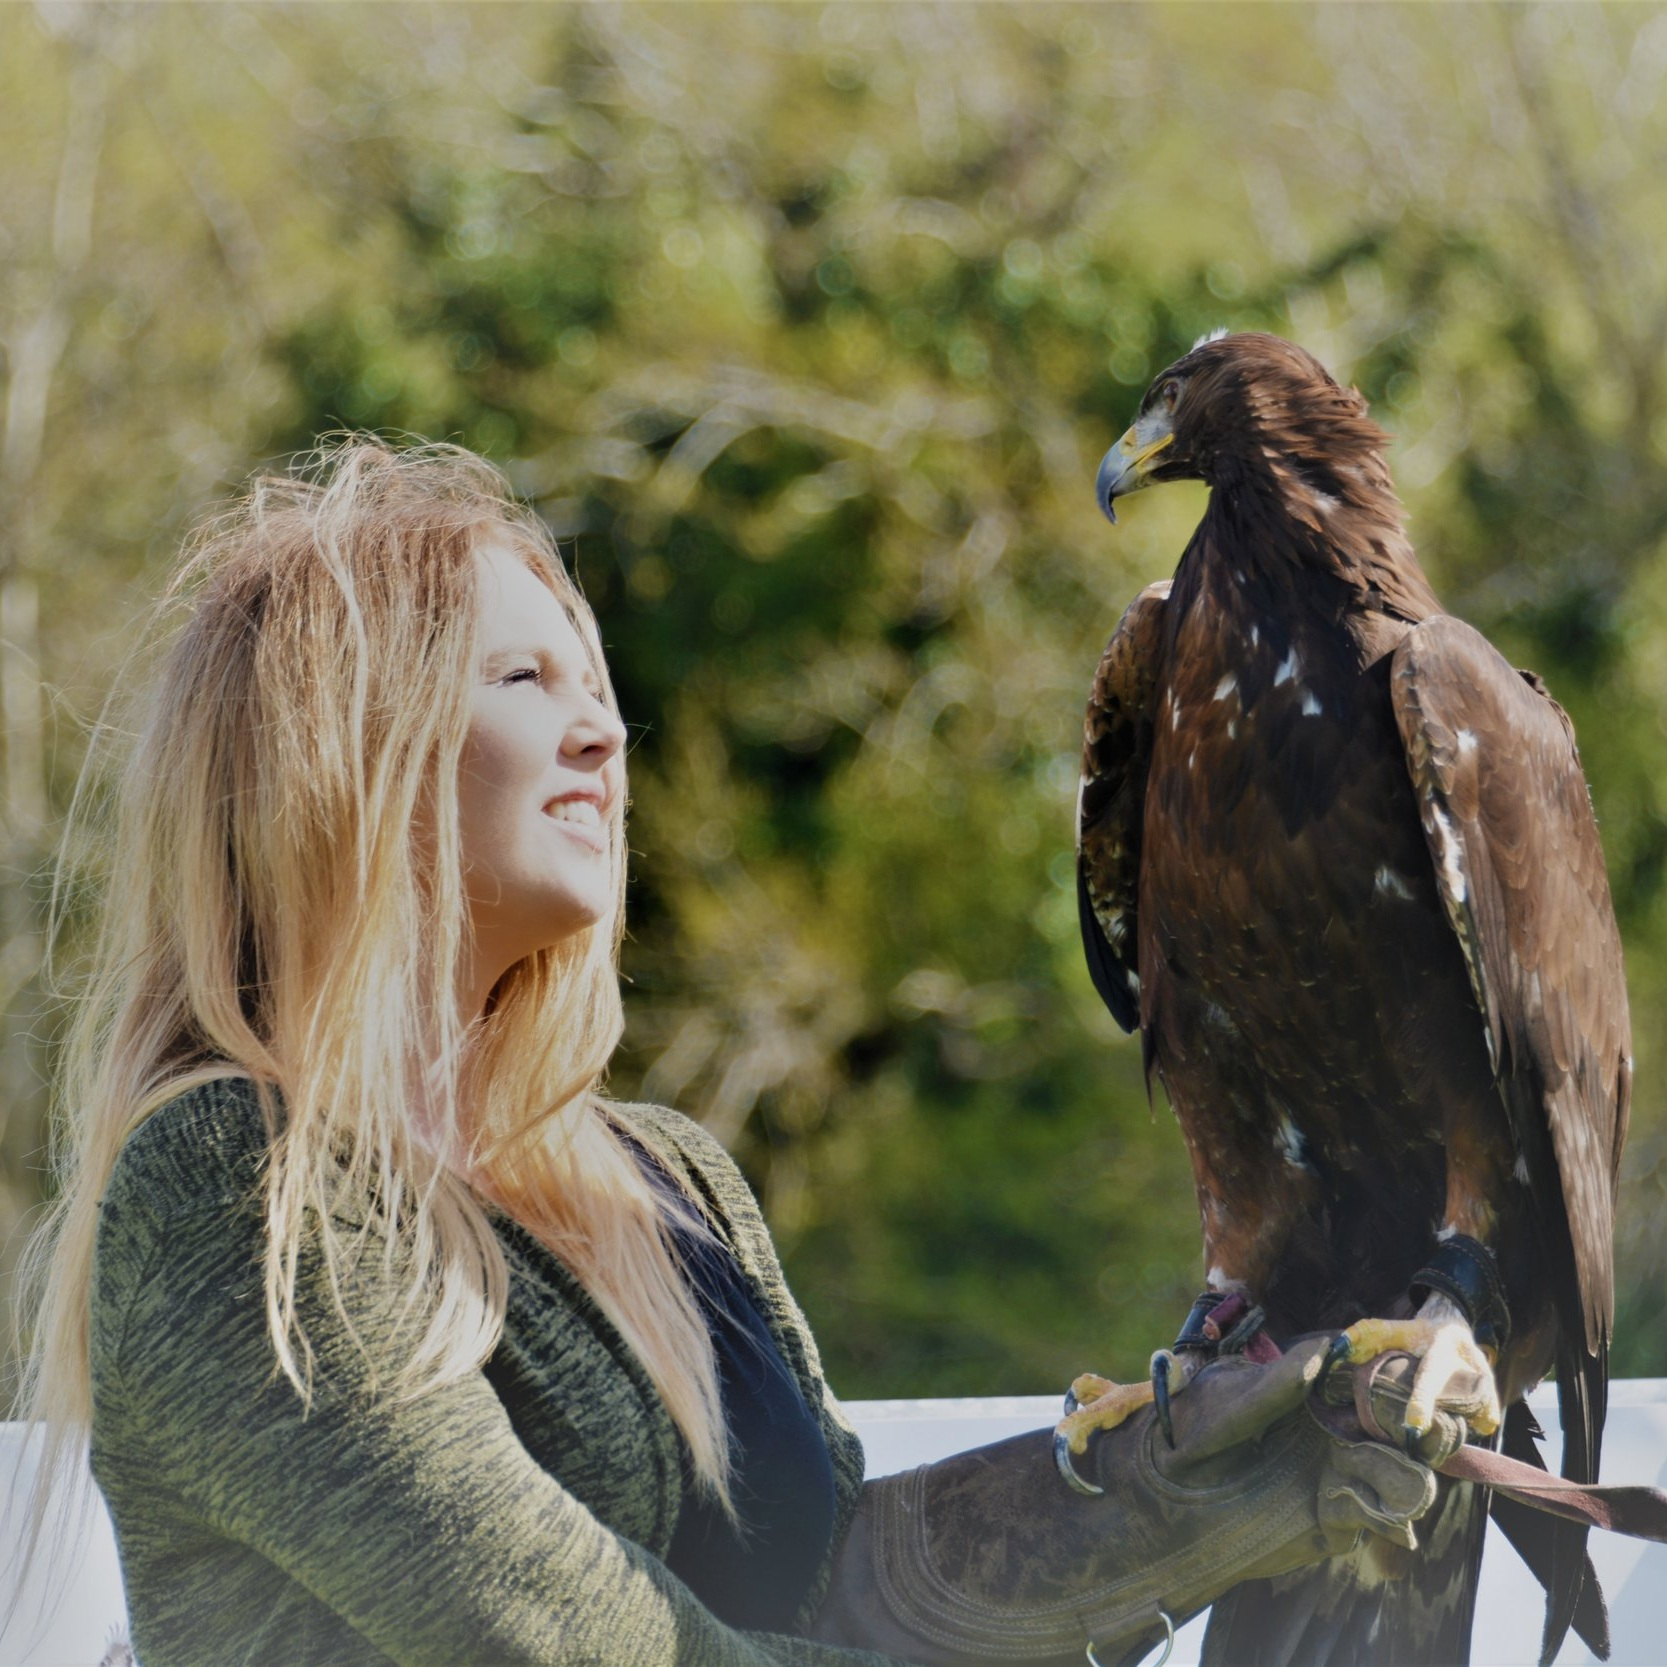 Sophie-lee Williams - Co-Director/Project researcherSophie-lee is a raptor biologist that has over 10 years experience working with wild, wild-injured and rehabilitated owls and raptors. Her ambition is to dedicate her research career to restoring welsh biodiversity and habitat.